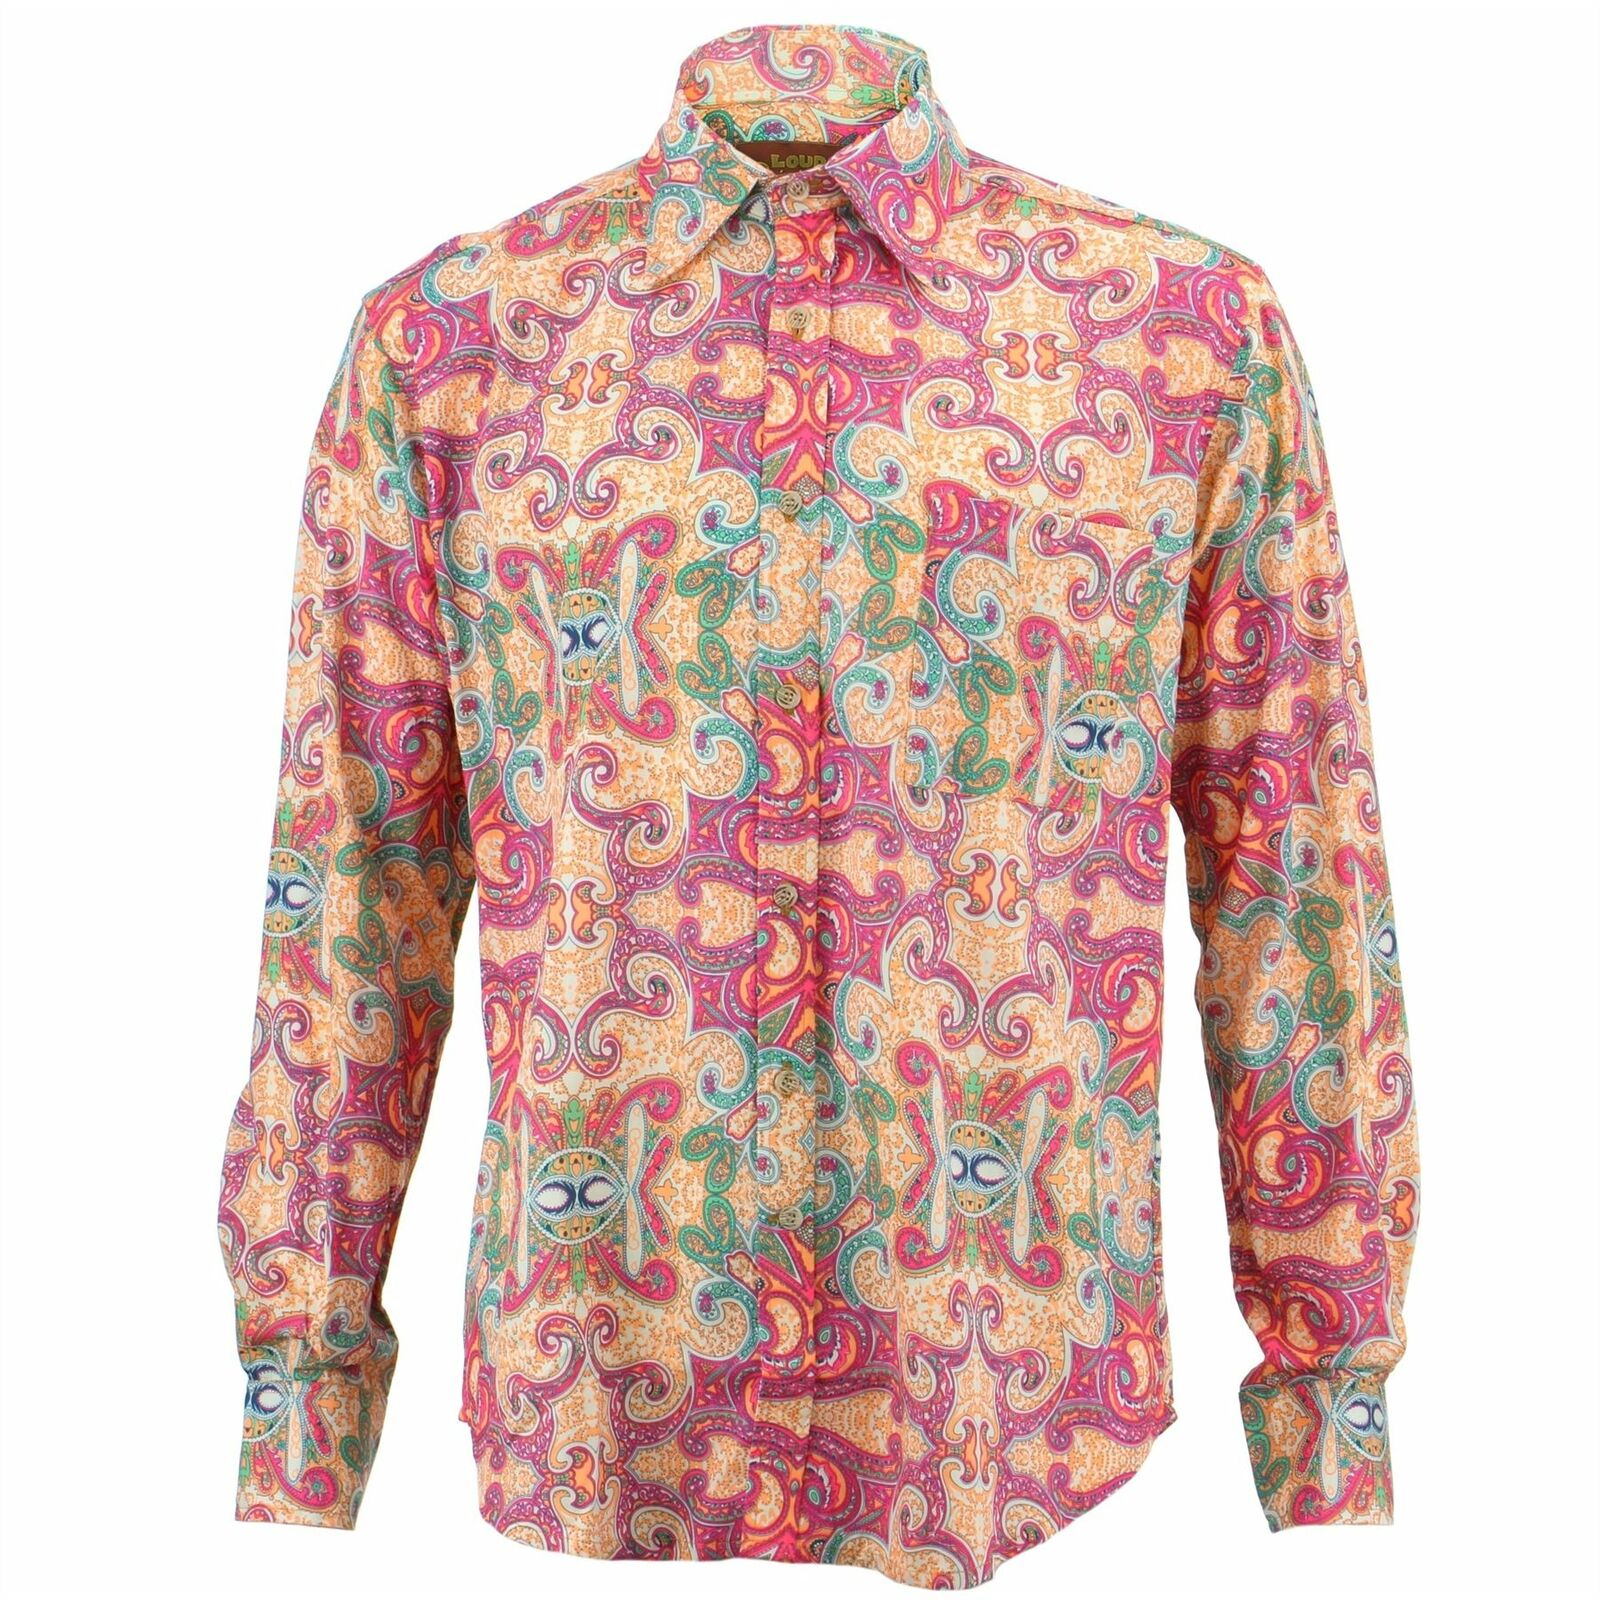 a723c8d1 Mens Shirt Loud Originals REGULAR FIT Boho Pink Retro Psychedelic Fancy